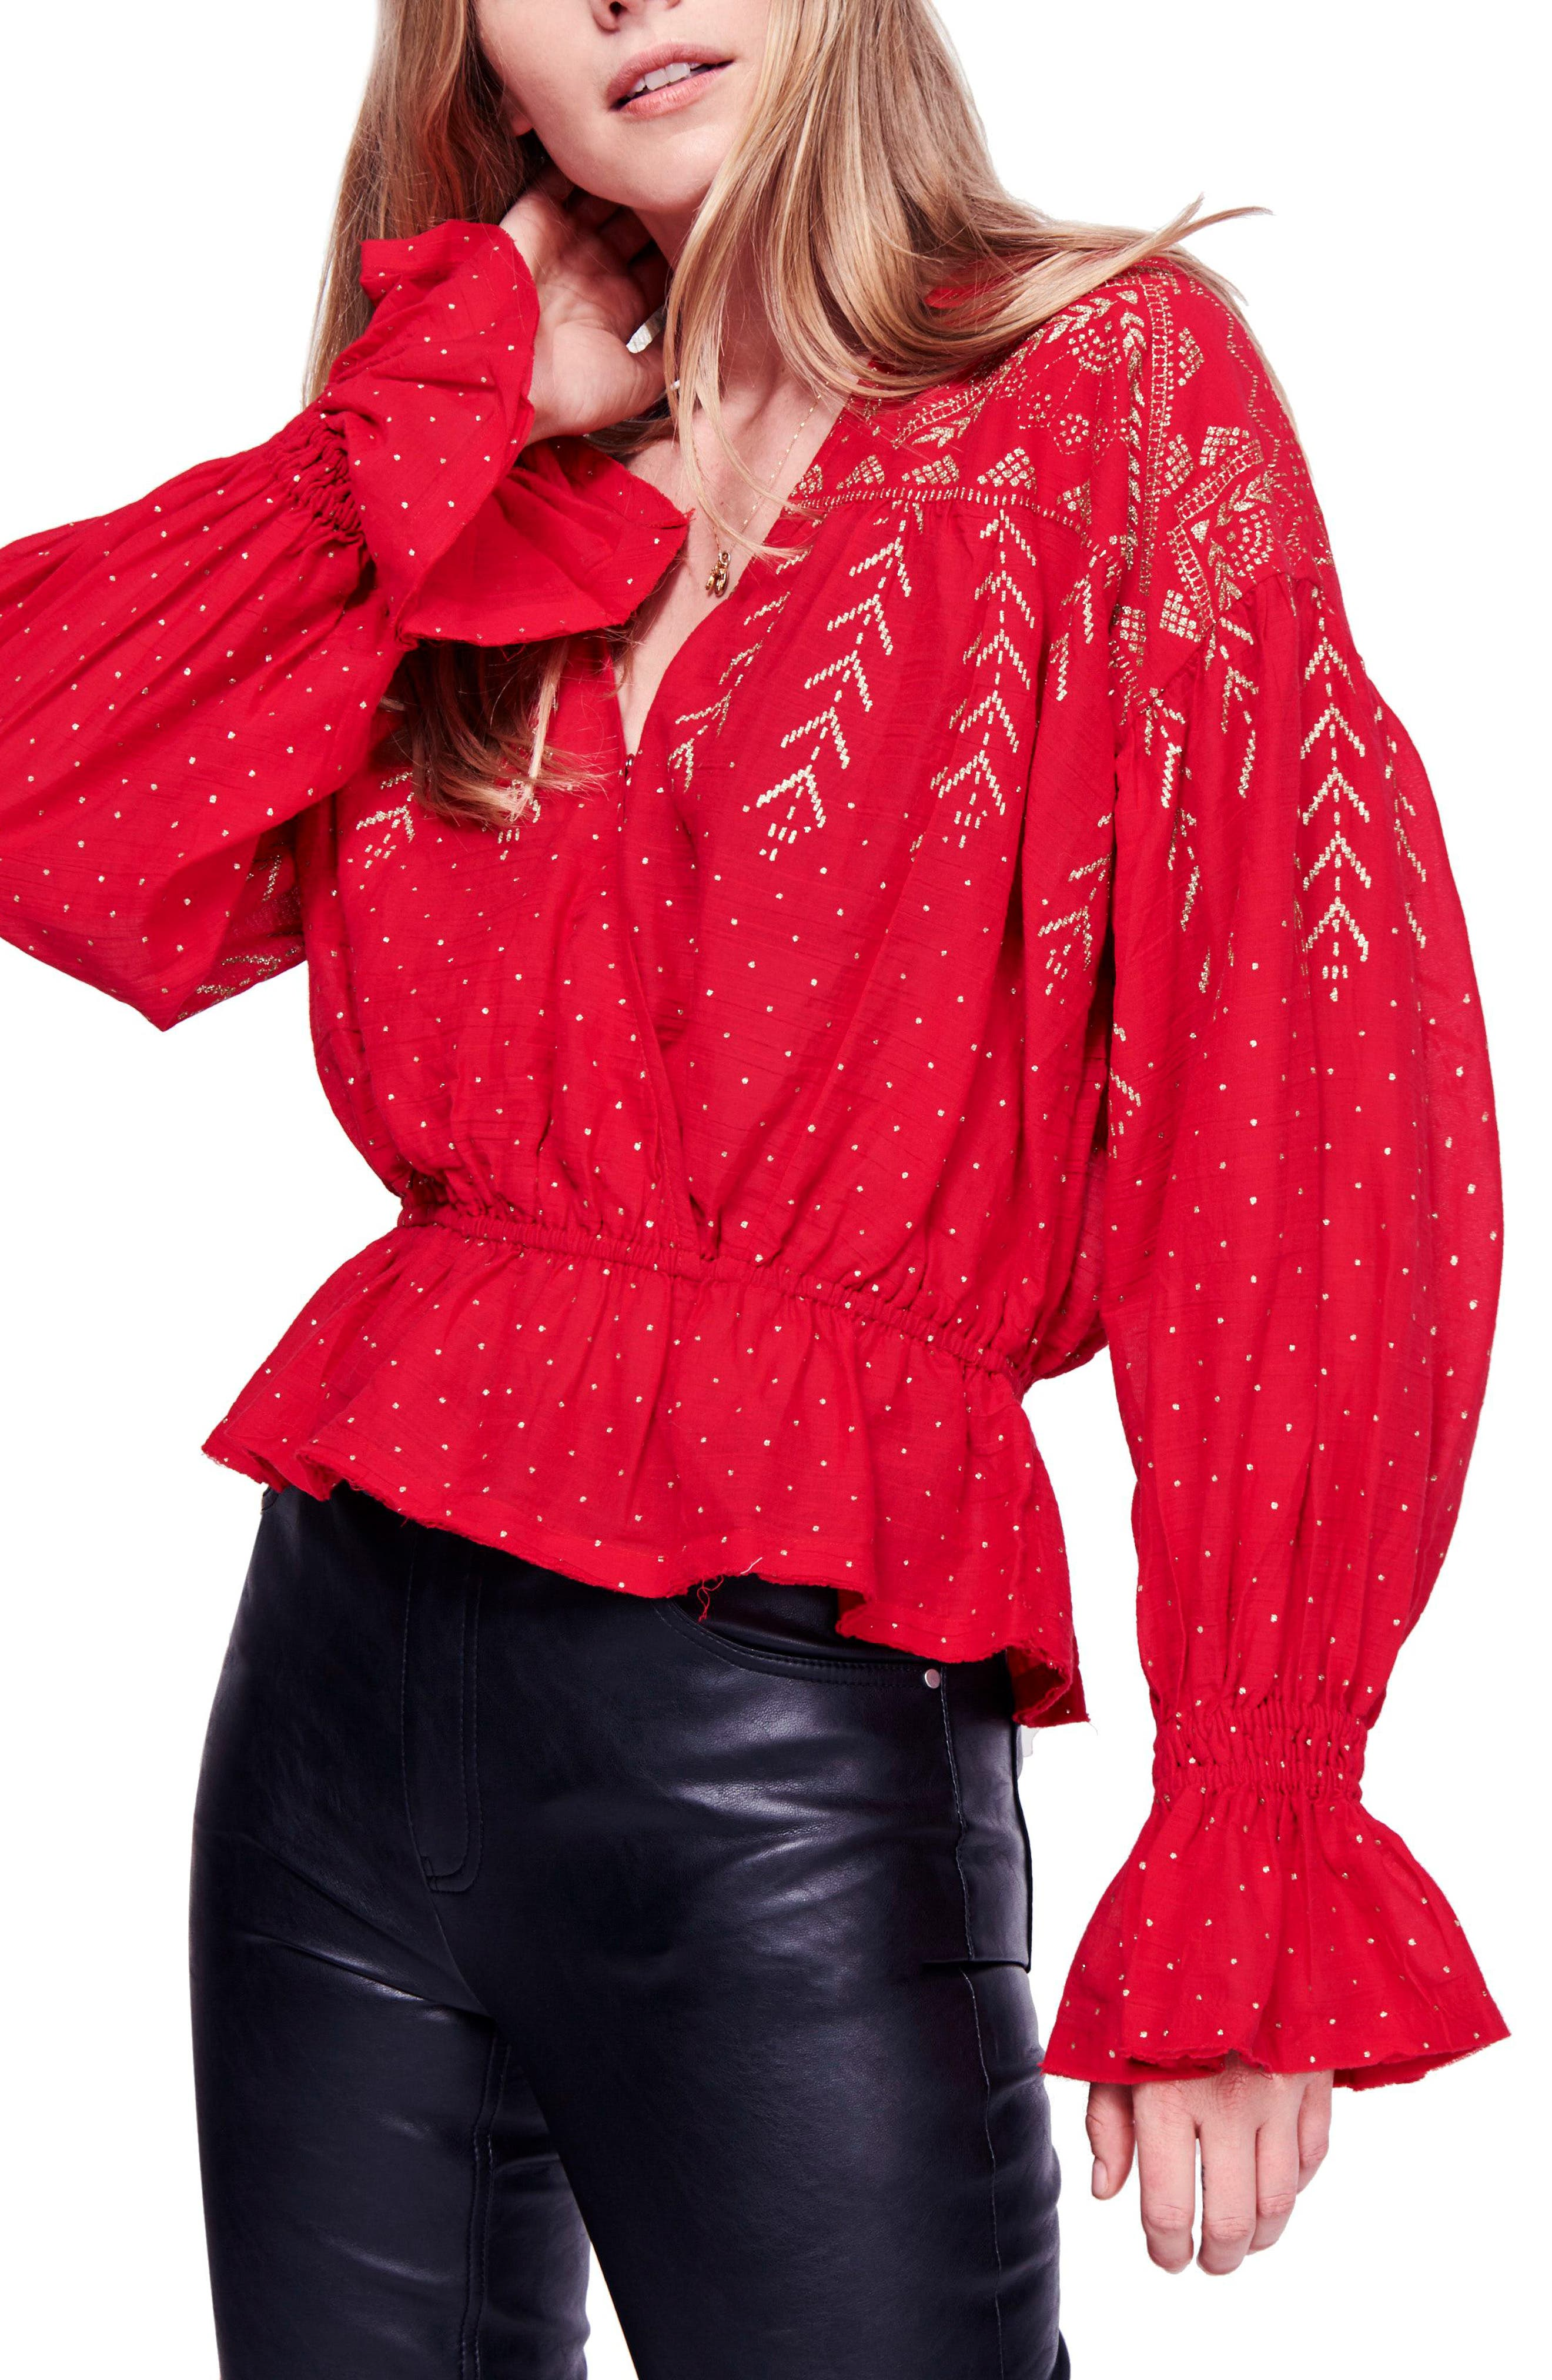 Counting Stars Blouse,                             Main thumbnail 1, color,                             RED